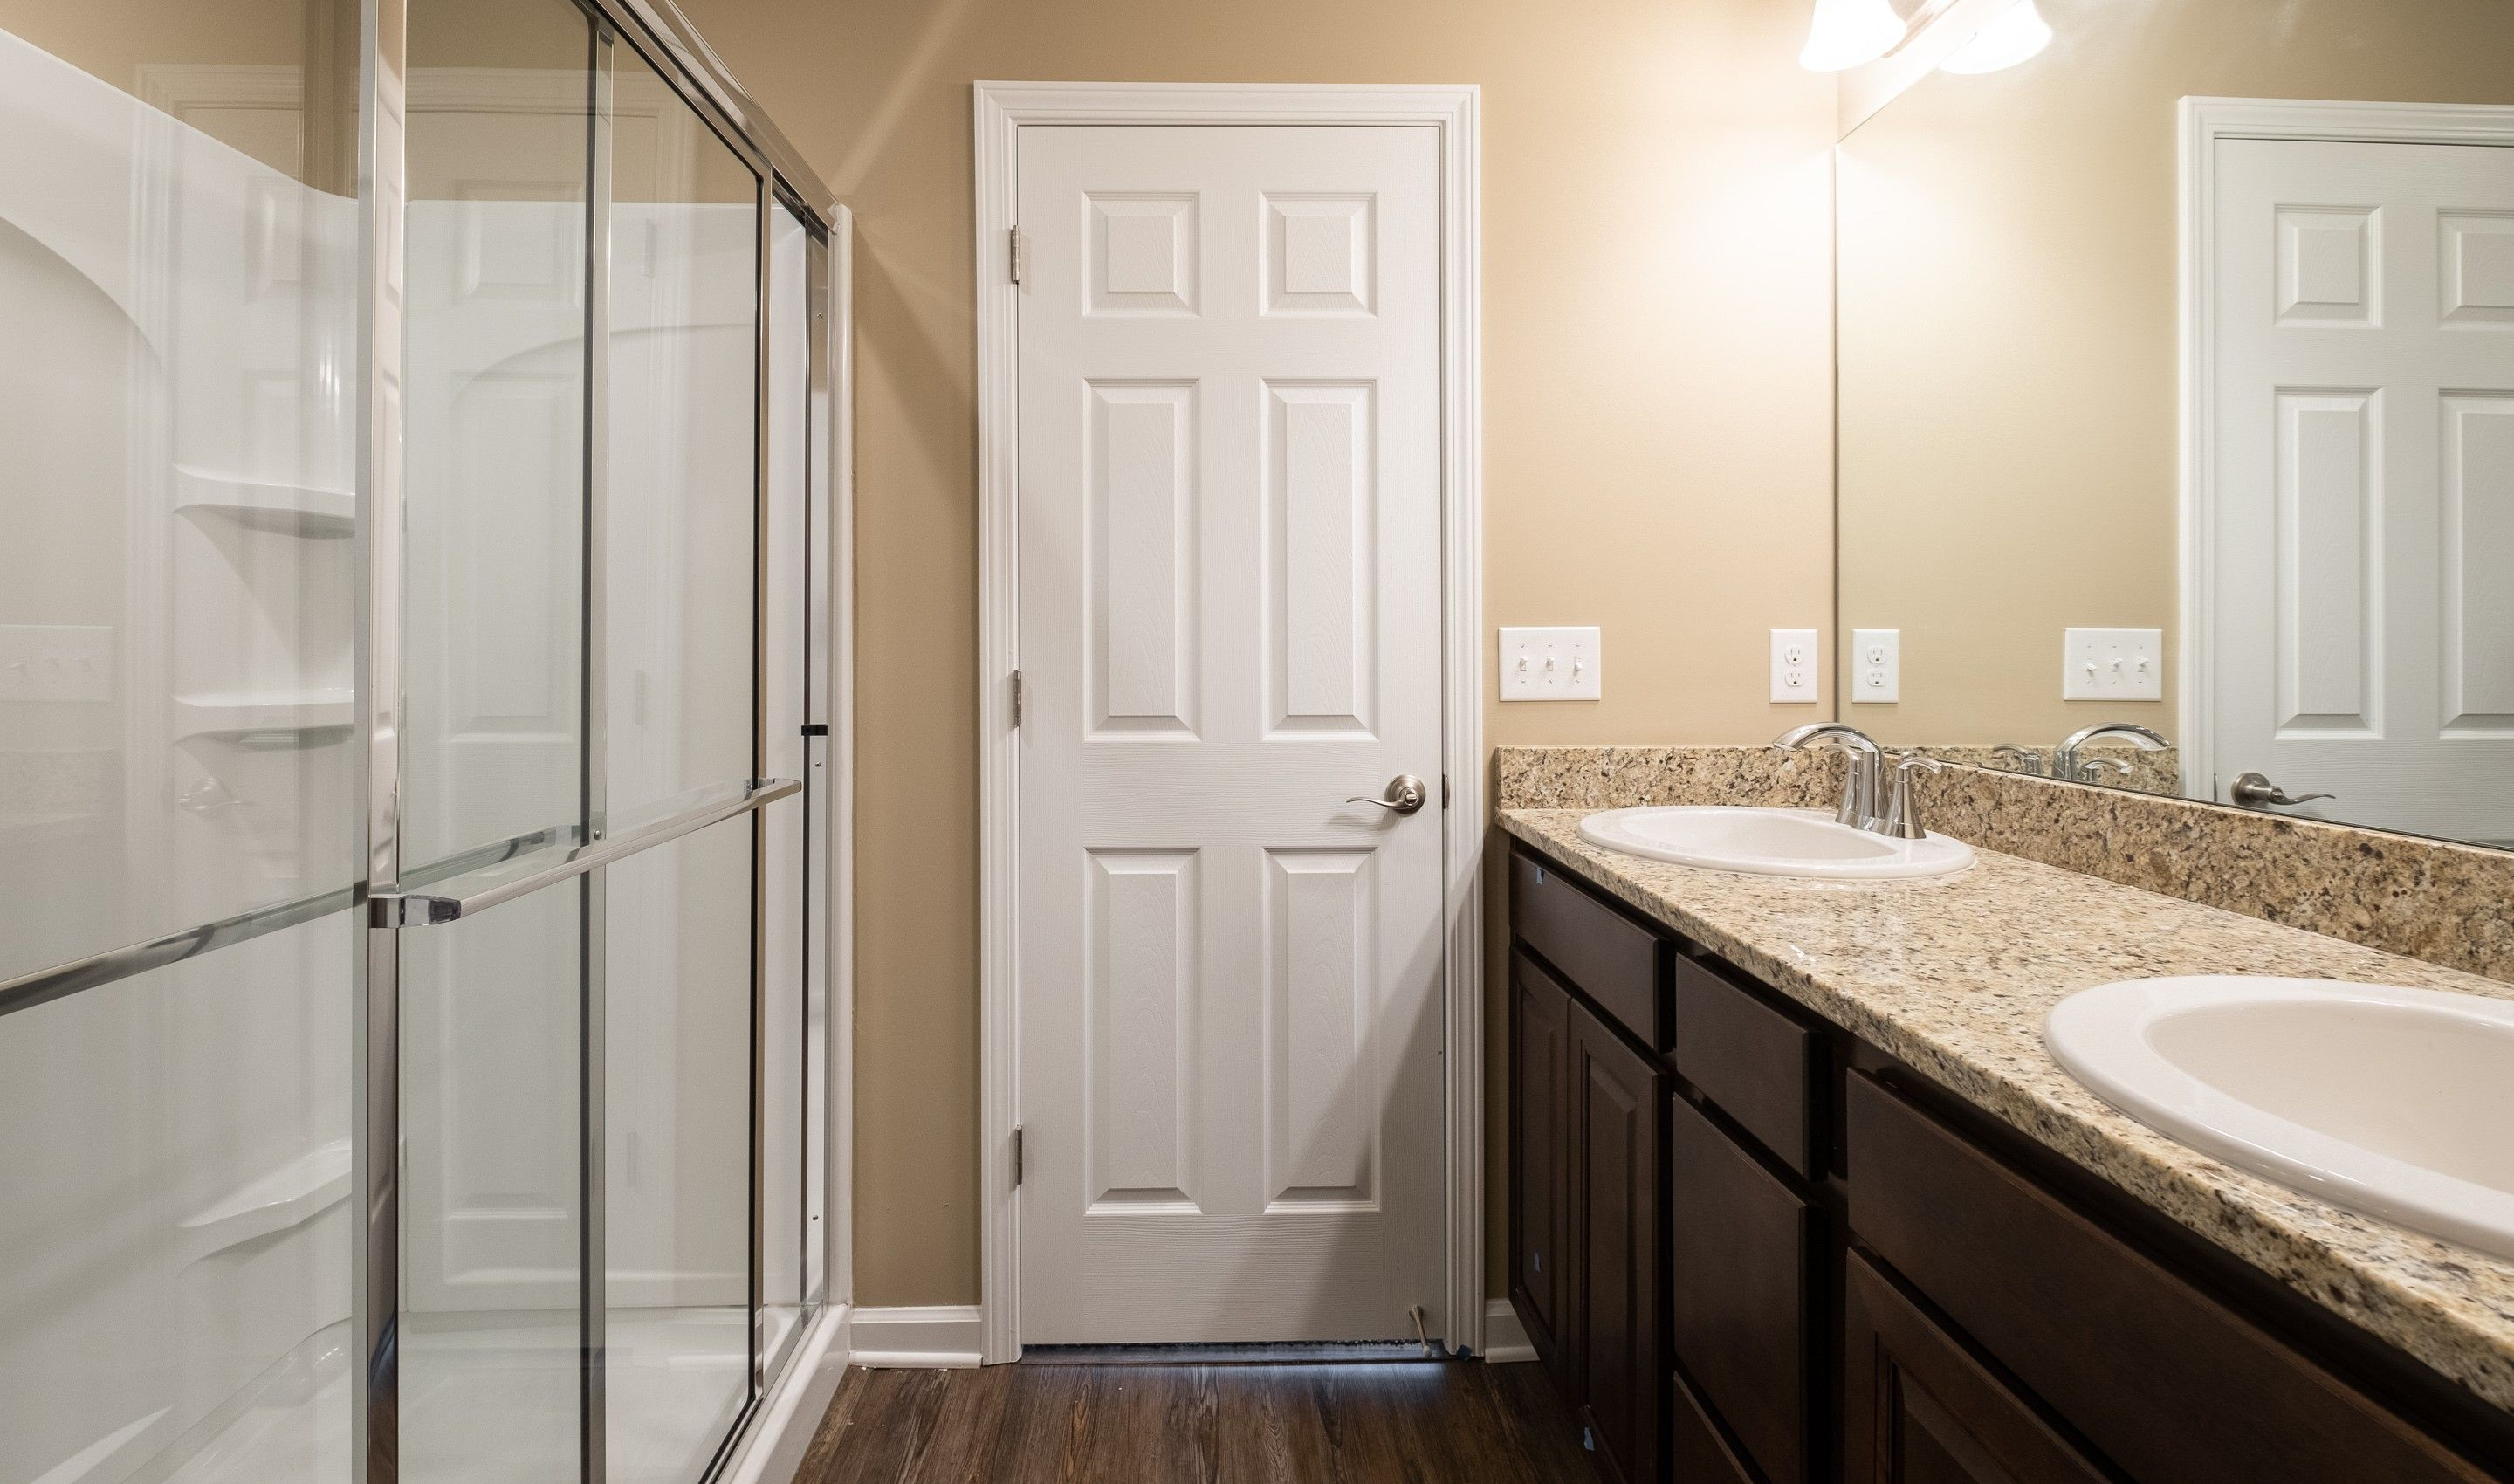 Bathroom featured in the Brantwood By K. Hovnanian® Homes in Cleveland, OH